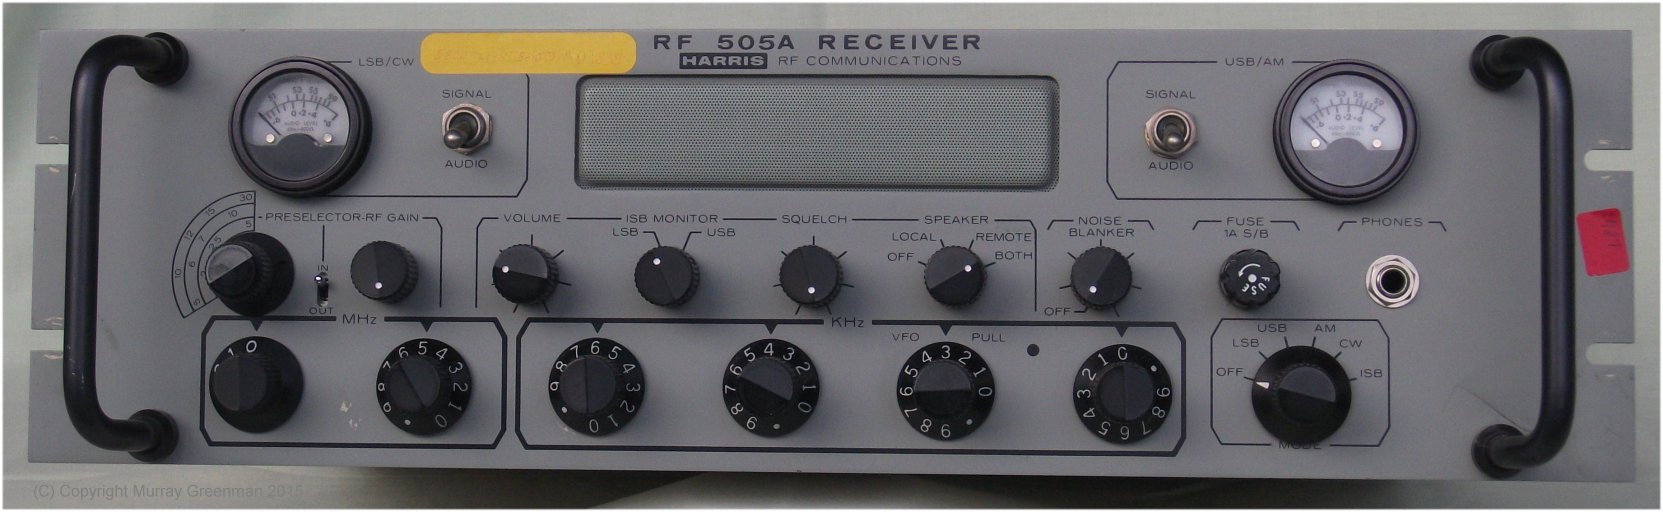 My Hf Receiver Collection Rf Input With Bandpass Filter Switch Circuit Control The Knob Tuned Harris 505a